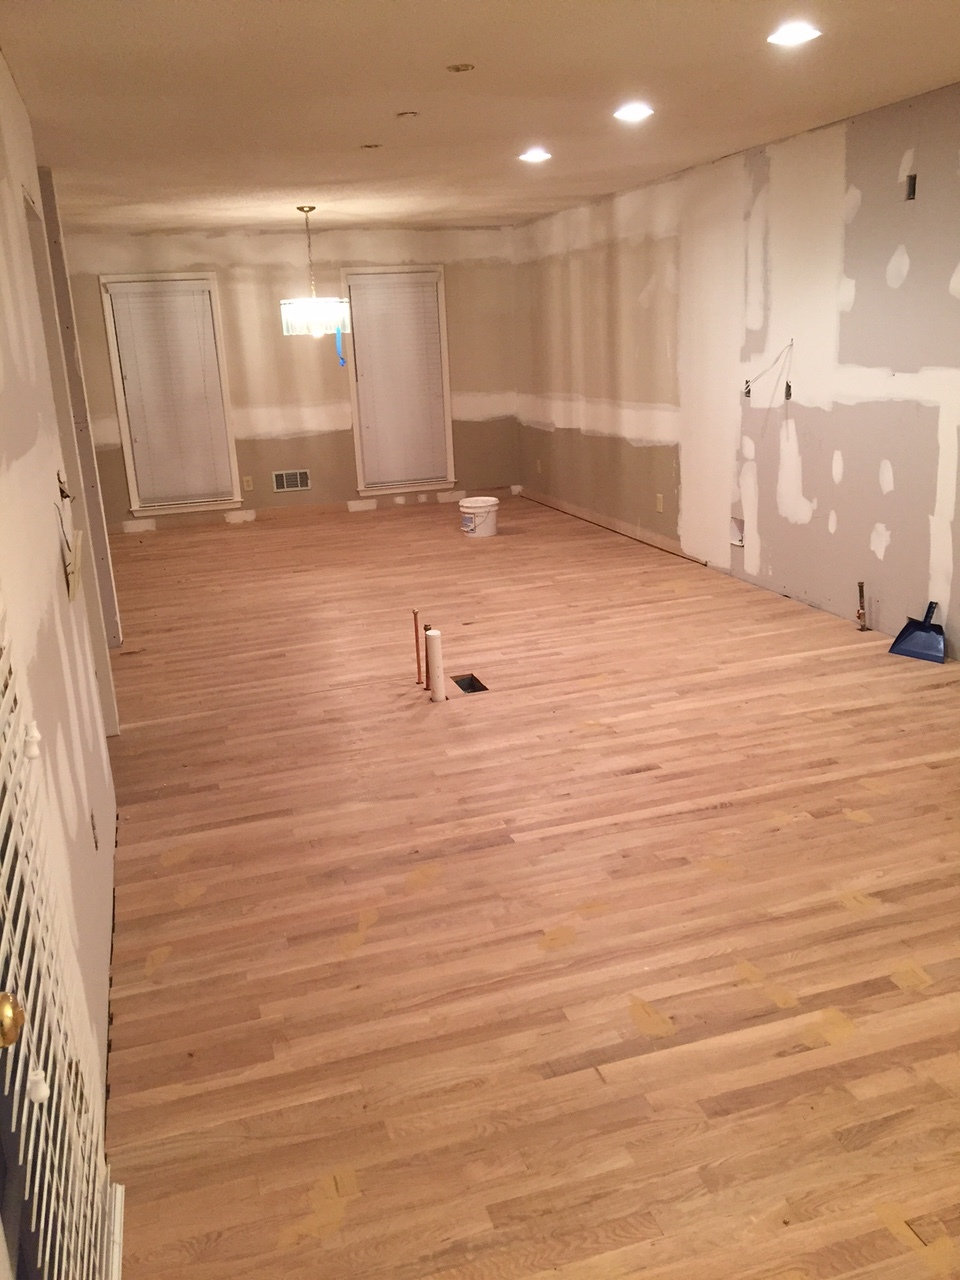 This gives you an idea of the space opened up when we removed the wall dividing the kitchen and dining room. Open concept here we come!